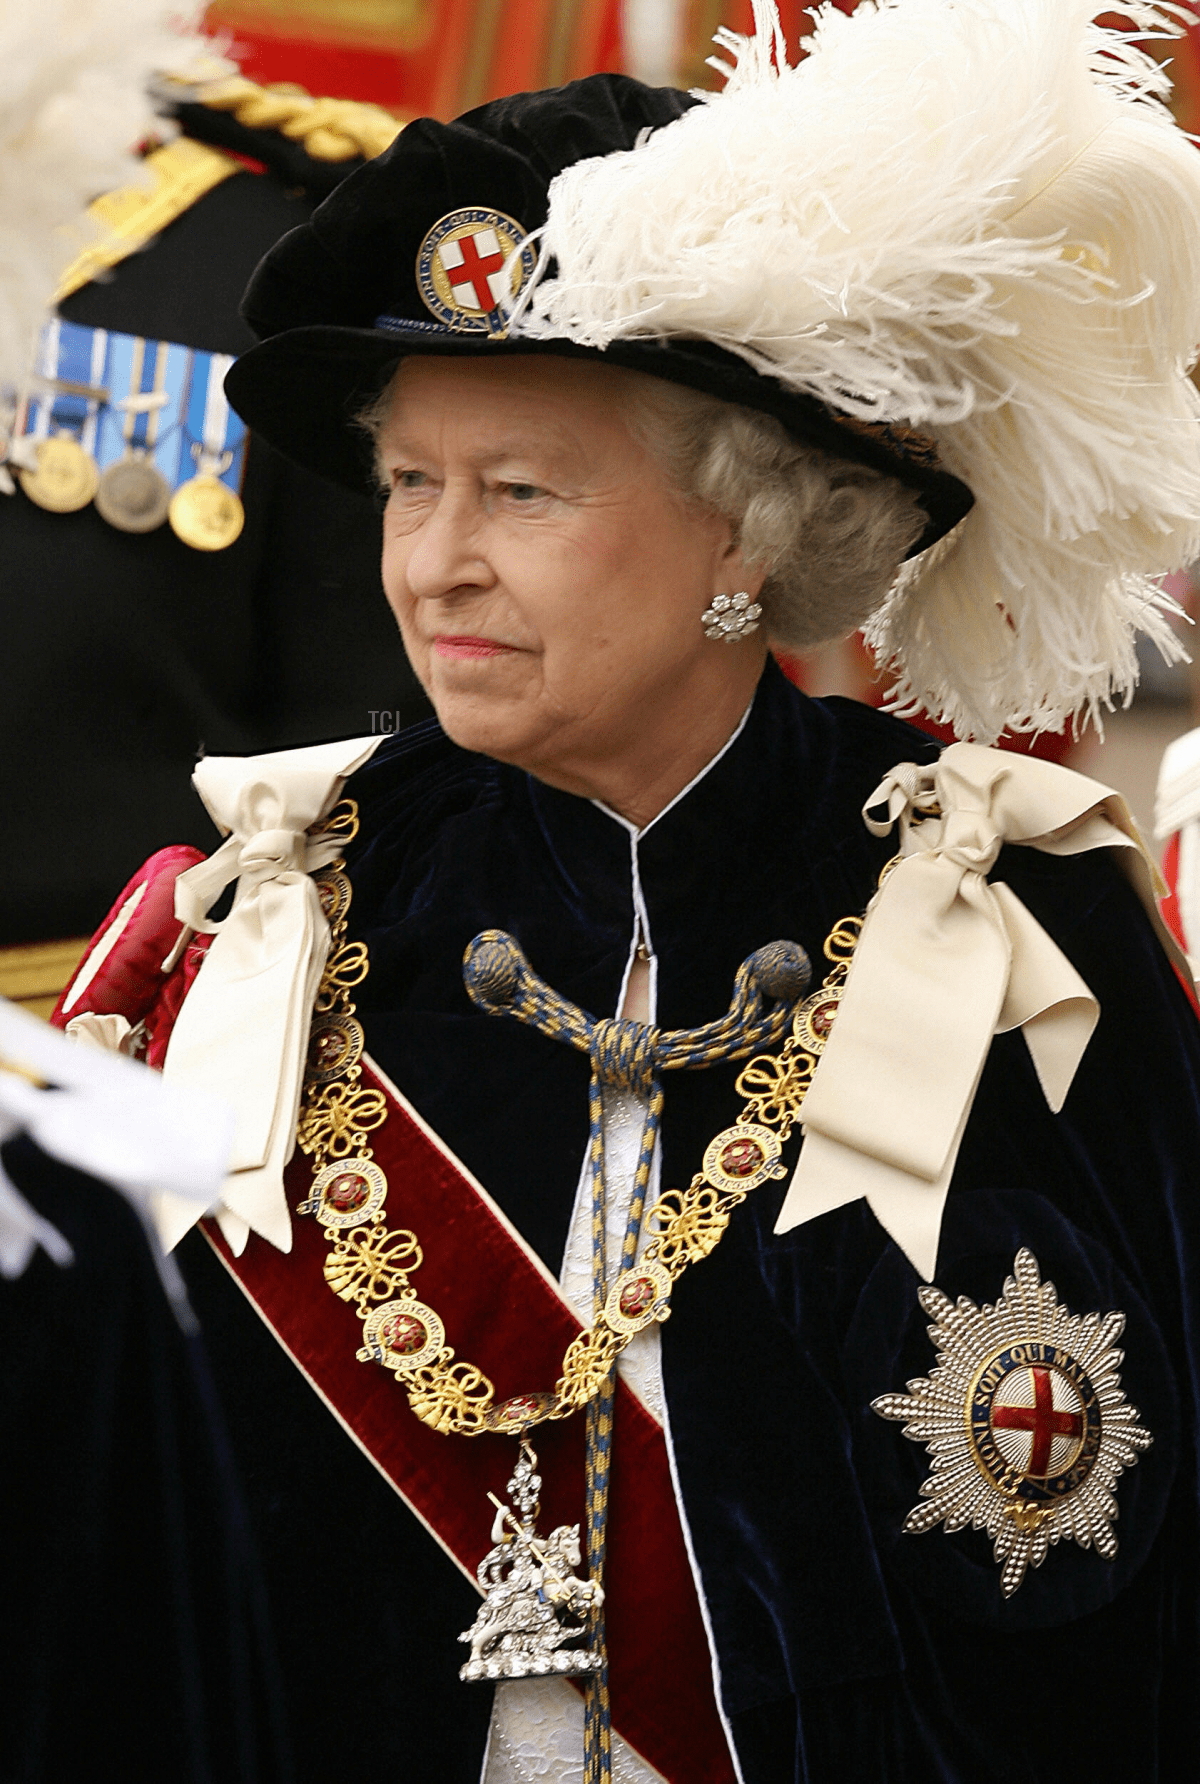 """Britain's Queen Elizabeth II takes part in """"The Procession and Installation Service"""" of The Most Noble Order of the Garter at Windsor Castle, 19 June 2006"""